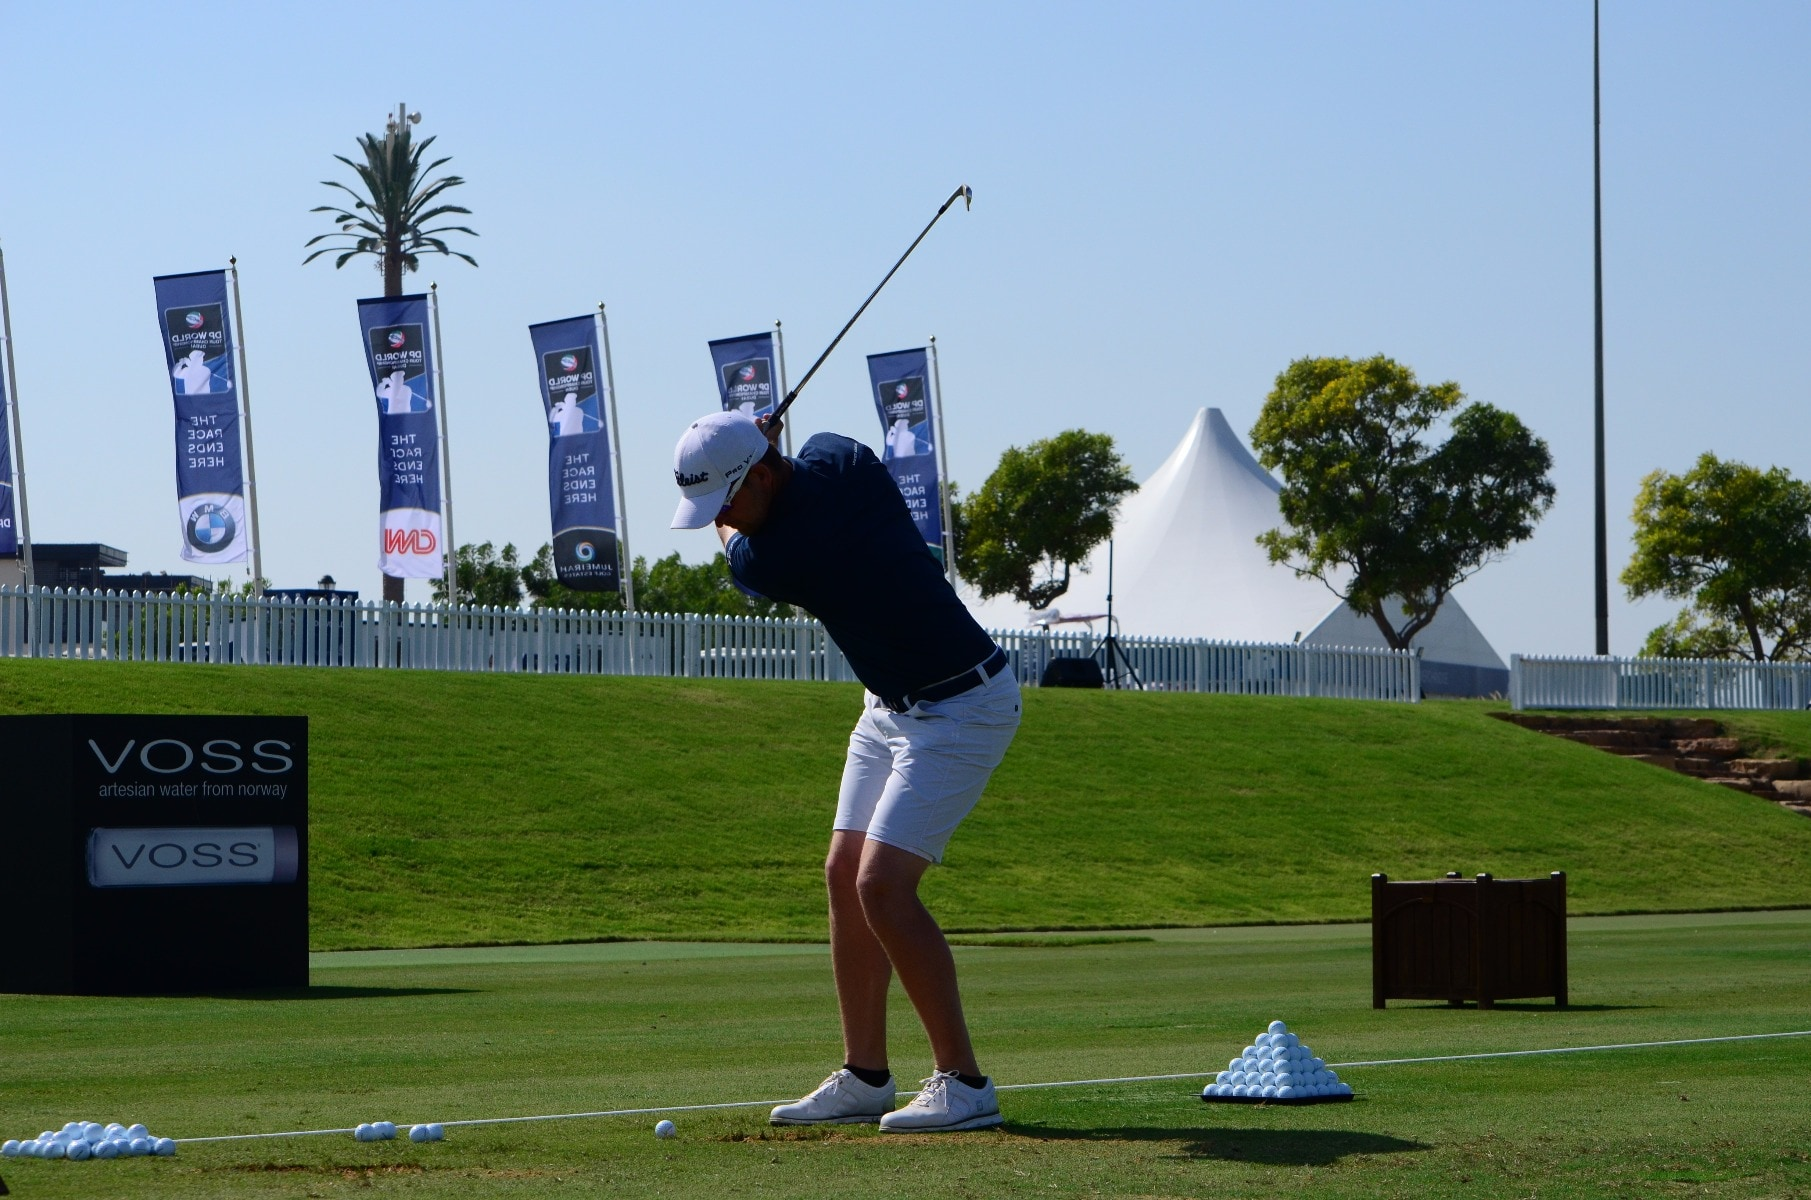 Bernd loosens up on the beautiful practice grounds...